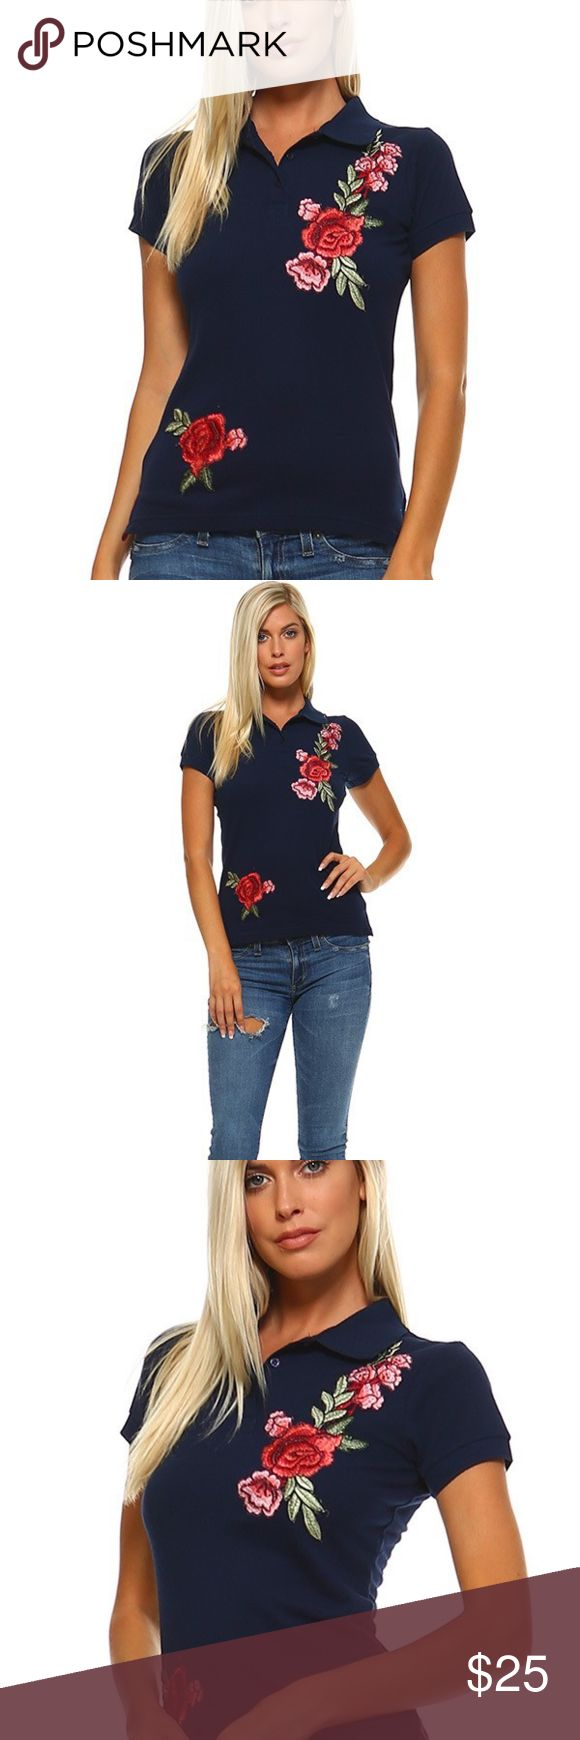 TOP NAVY BLUE POLO SHIRT WITH ROSE EMBROIDERY PATCH 50% COTTON 45% POLYESTER 5% SPANDEX Tops Tees - Short Sleeve